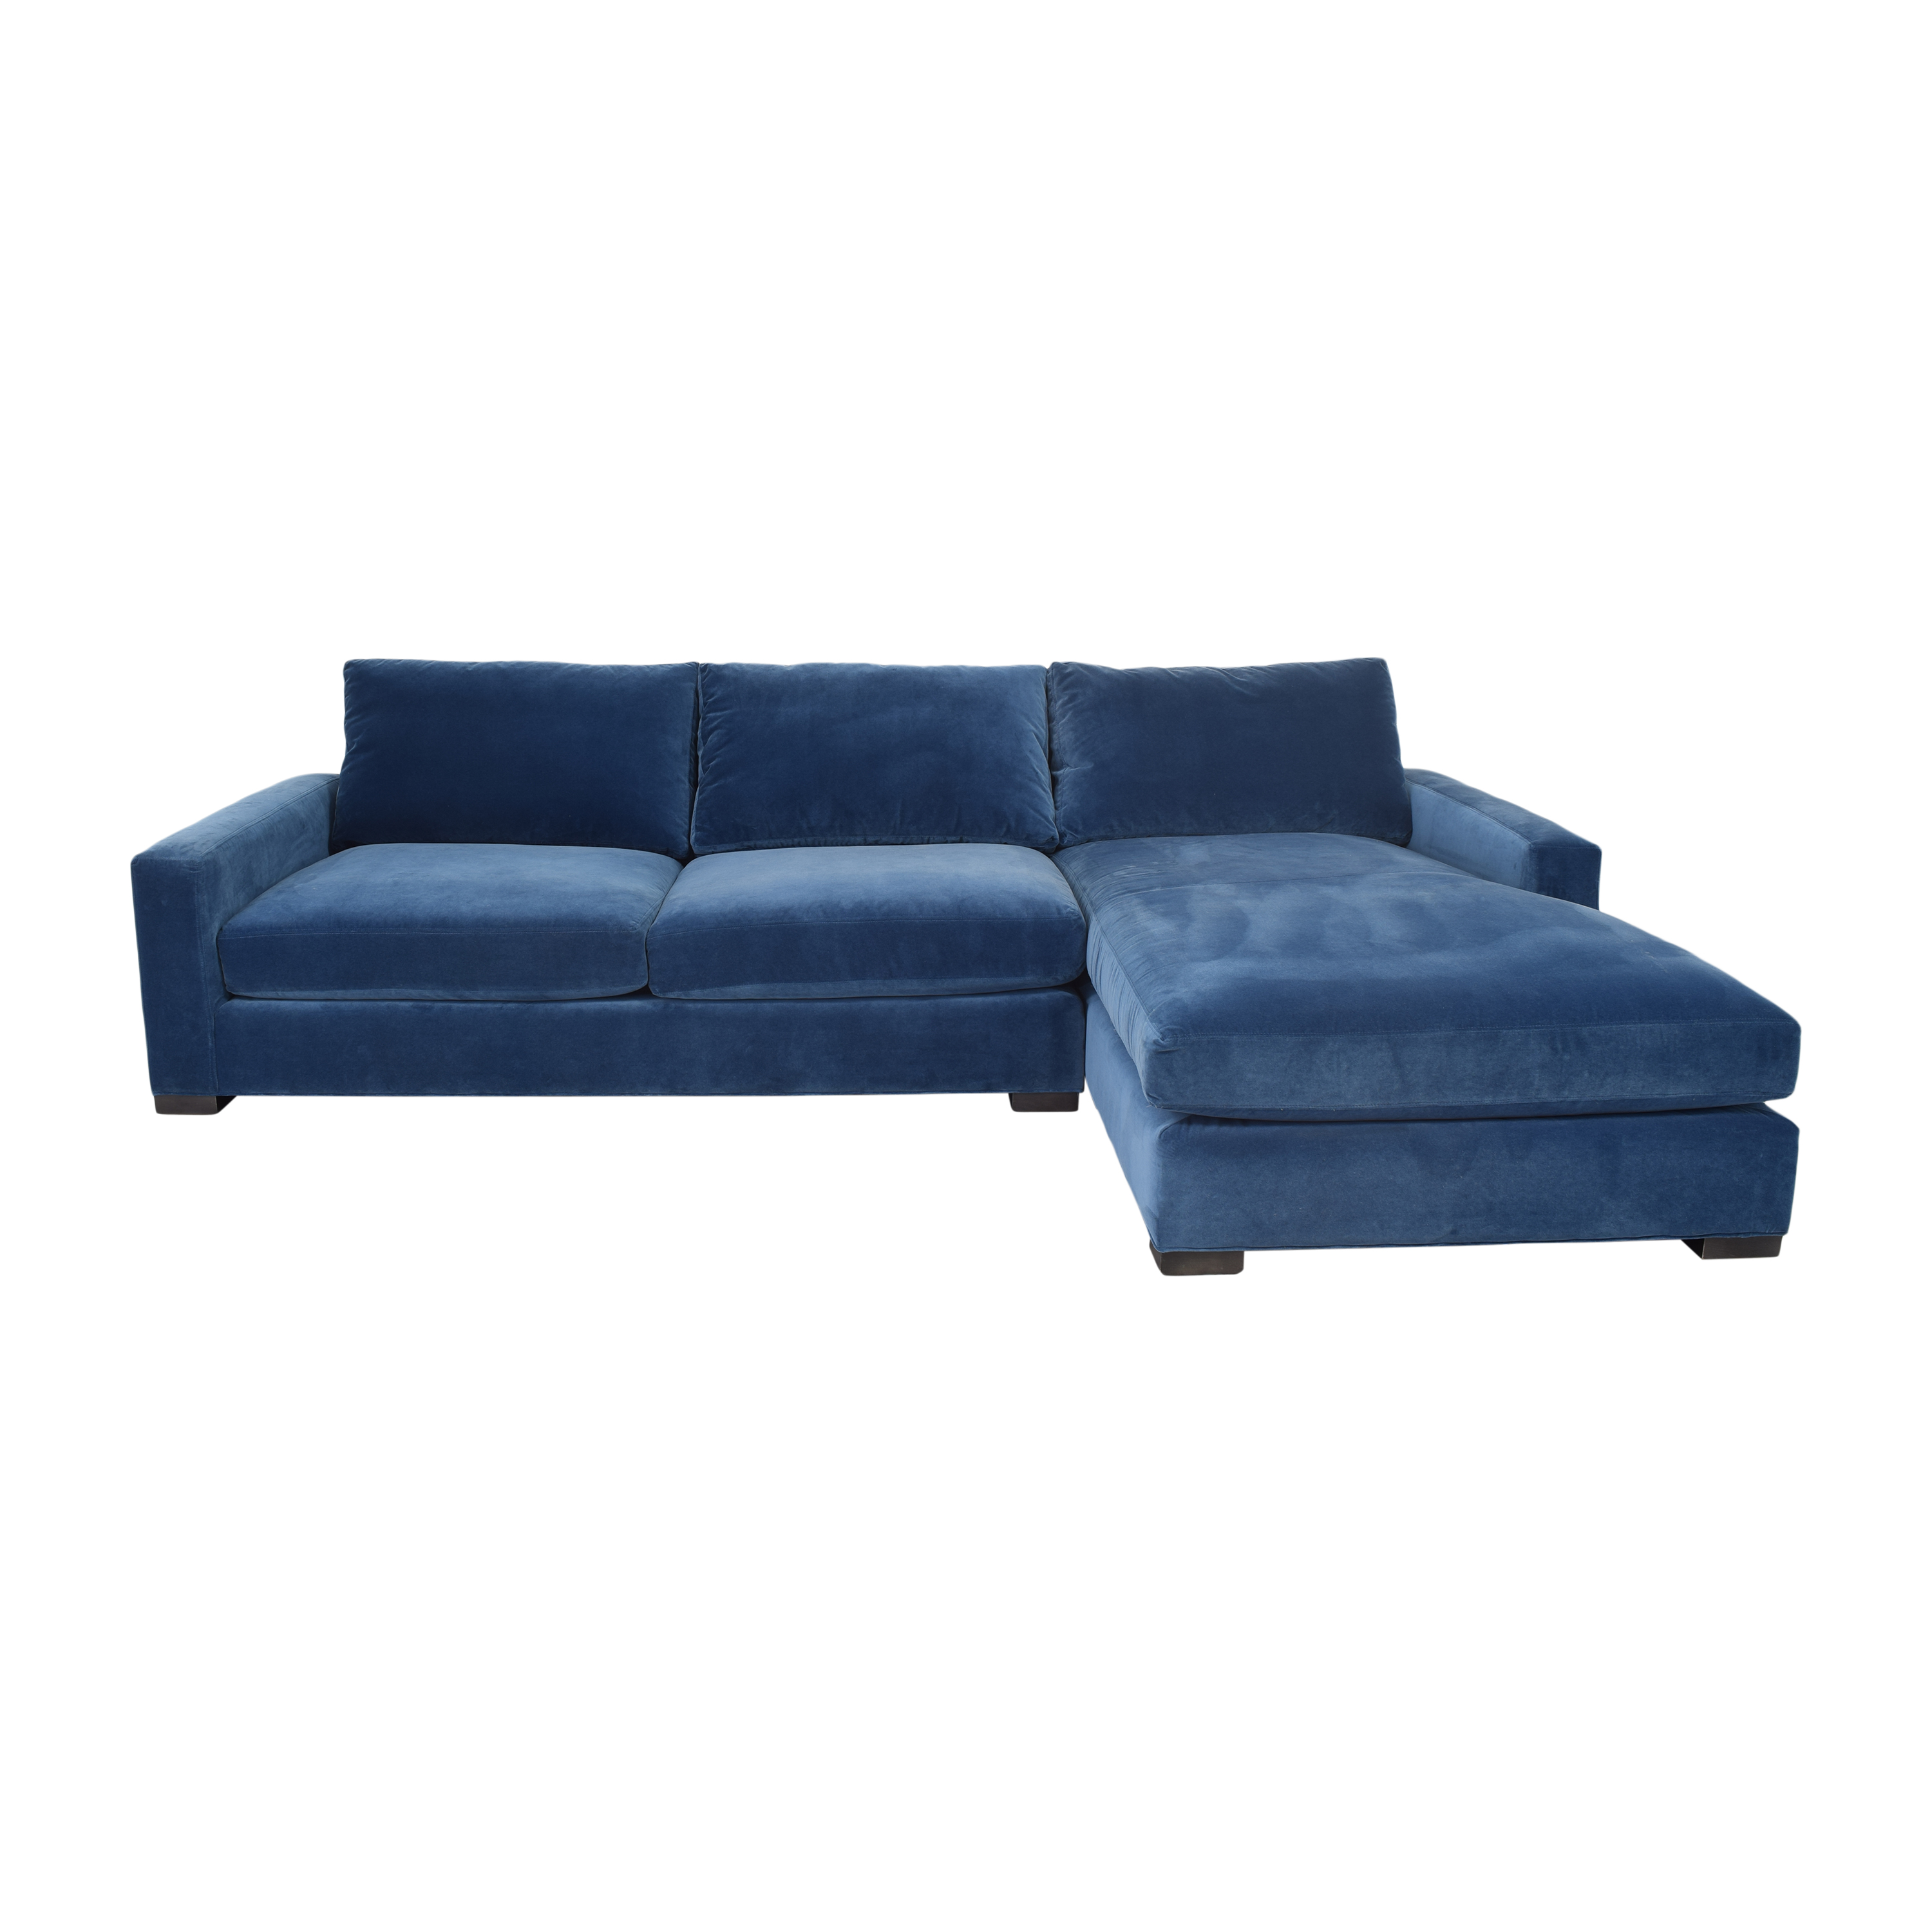 Room & Board Room & Board Metro Sectional Sofa with Chaise ct